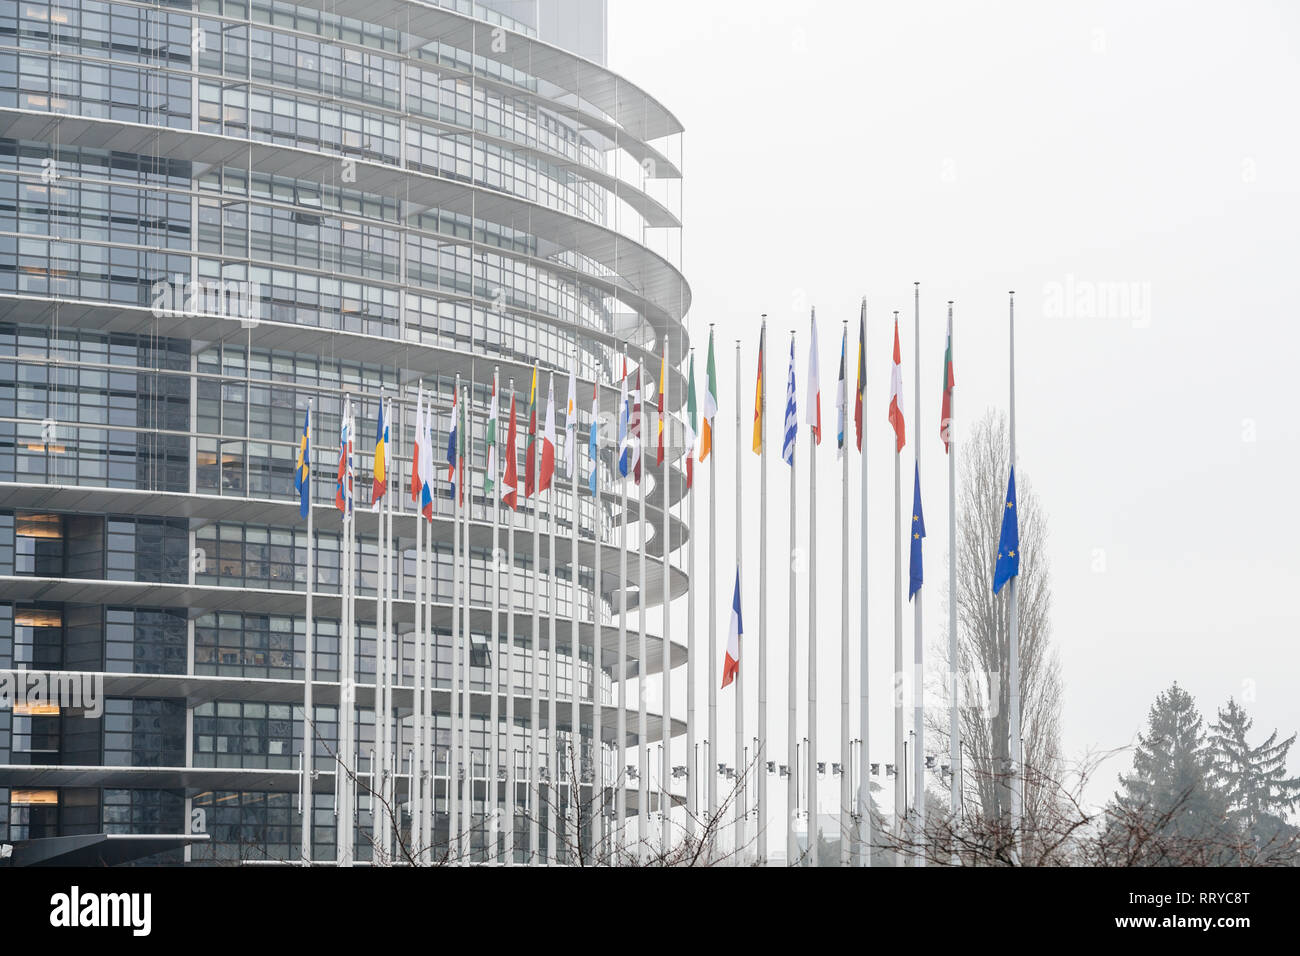 STRASBOURG, FRANCE - DEC 11, 2018: Side view of the European Union and French Flag flies at half-mast in front of the European Parliament following an attack in center of Strasbourg during annual Christmas Market - Stock Image